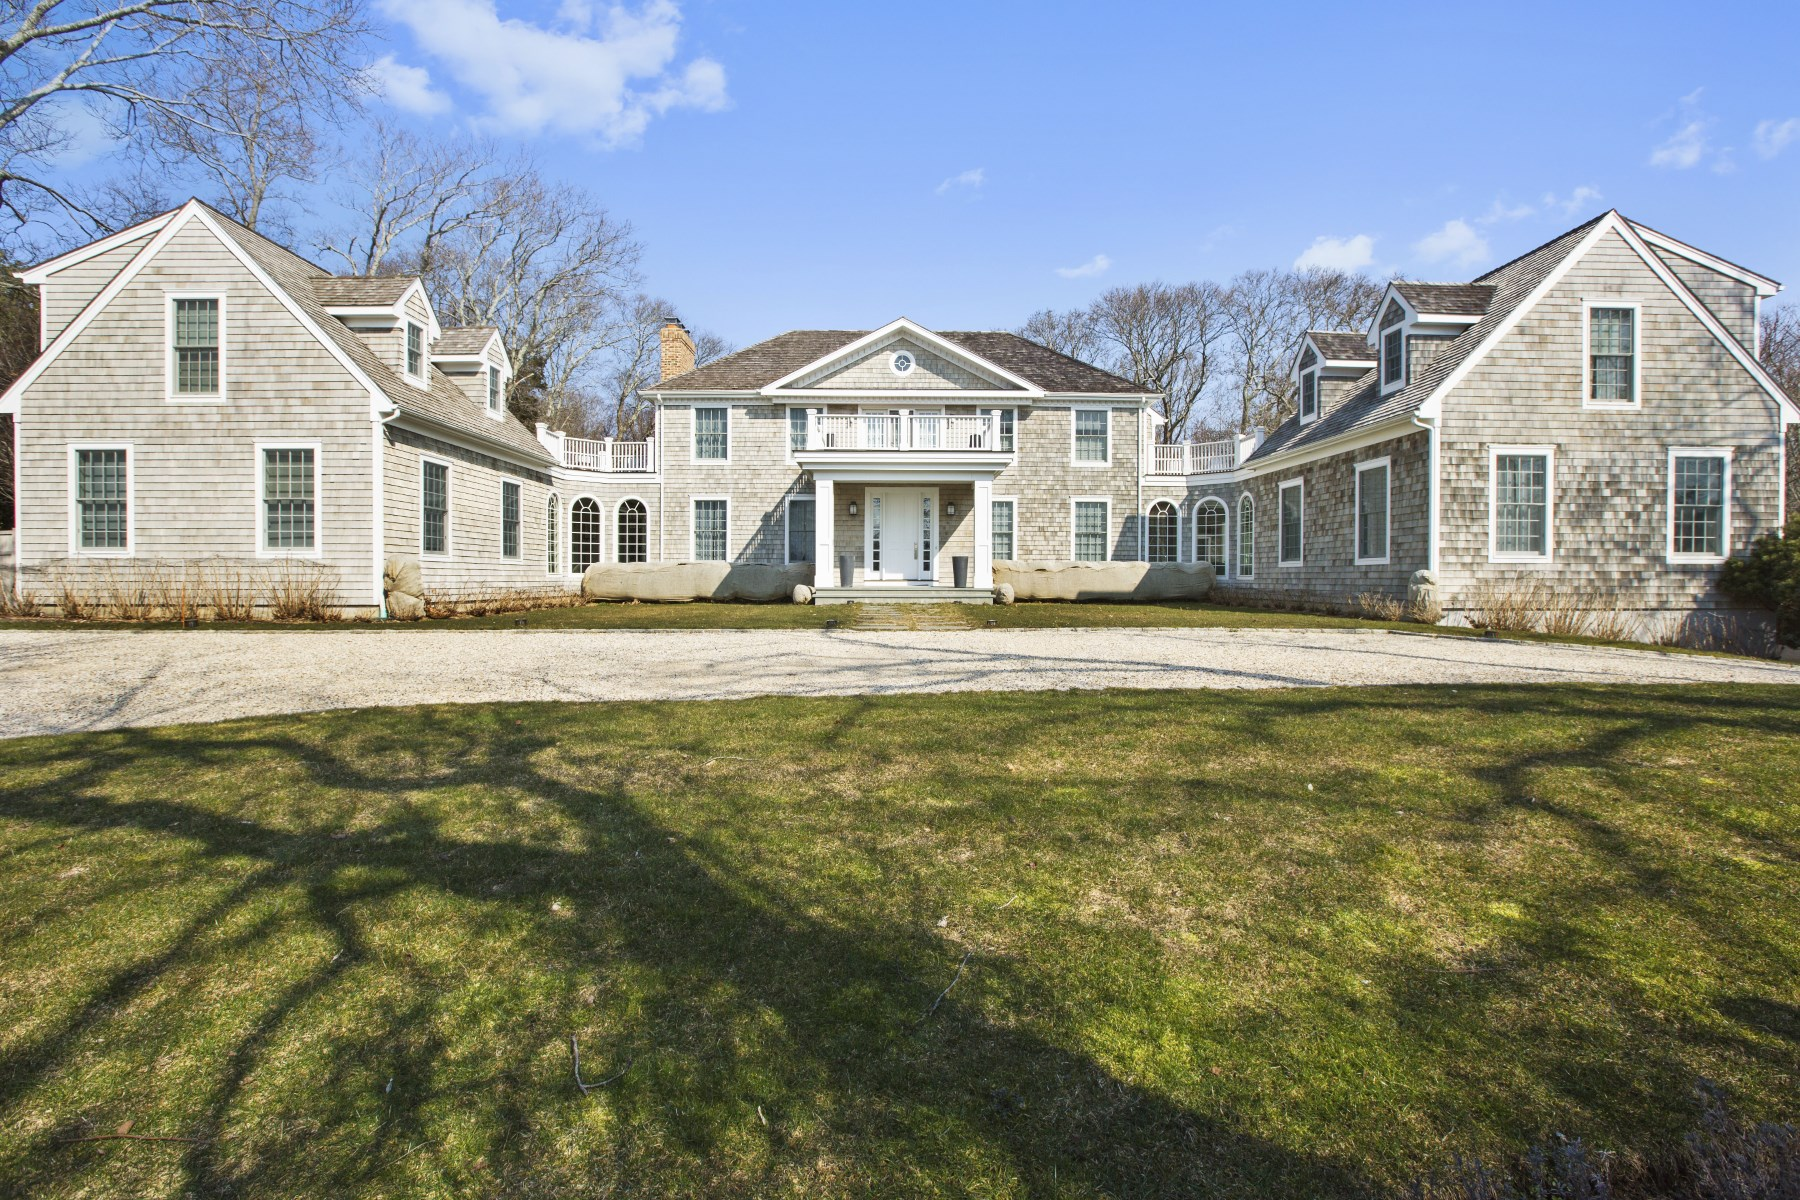 Single Family Home for Rent at Bridgehampton Beauty Bridgehampton, New York 11932 United States